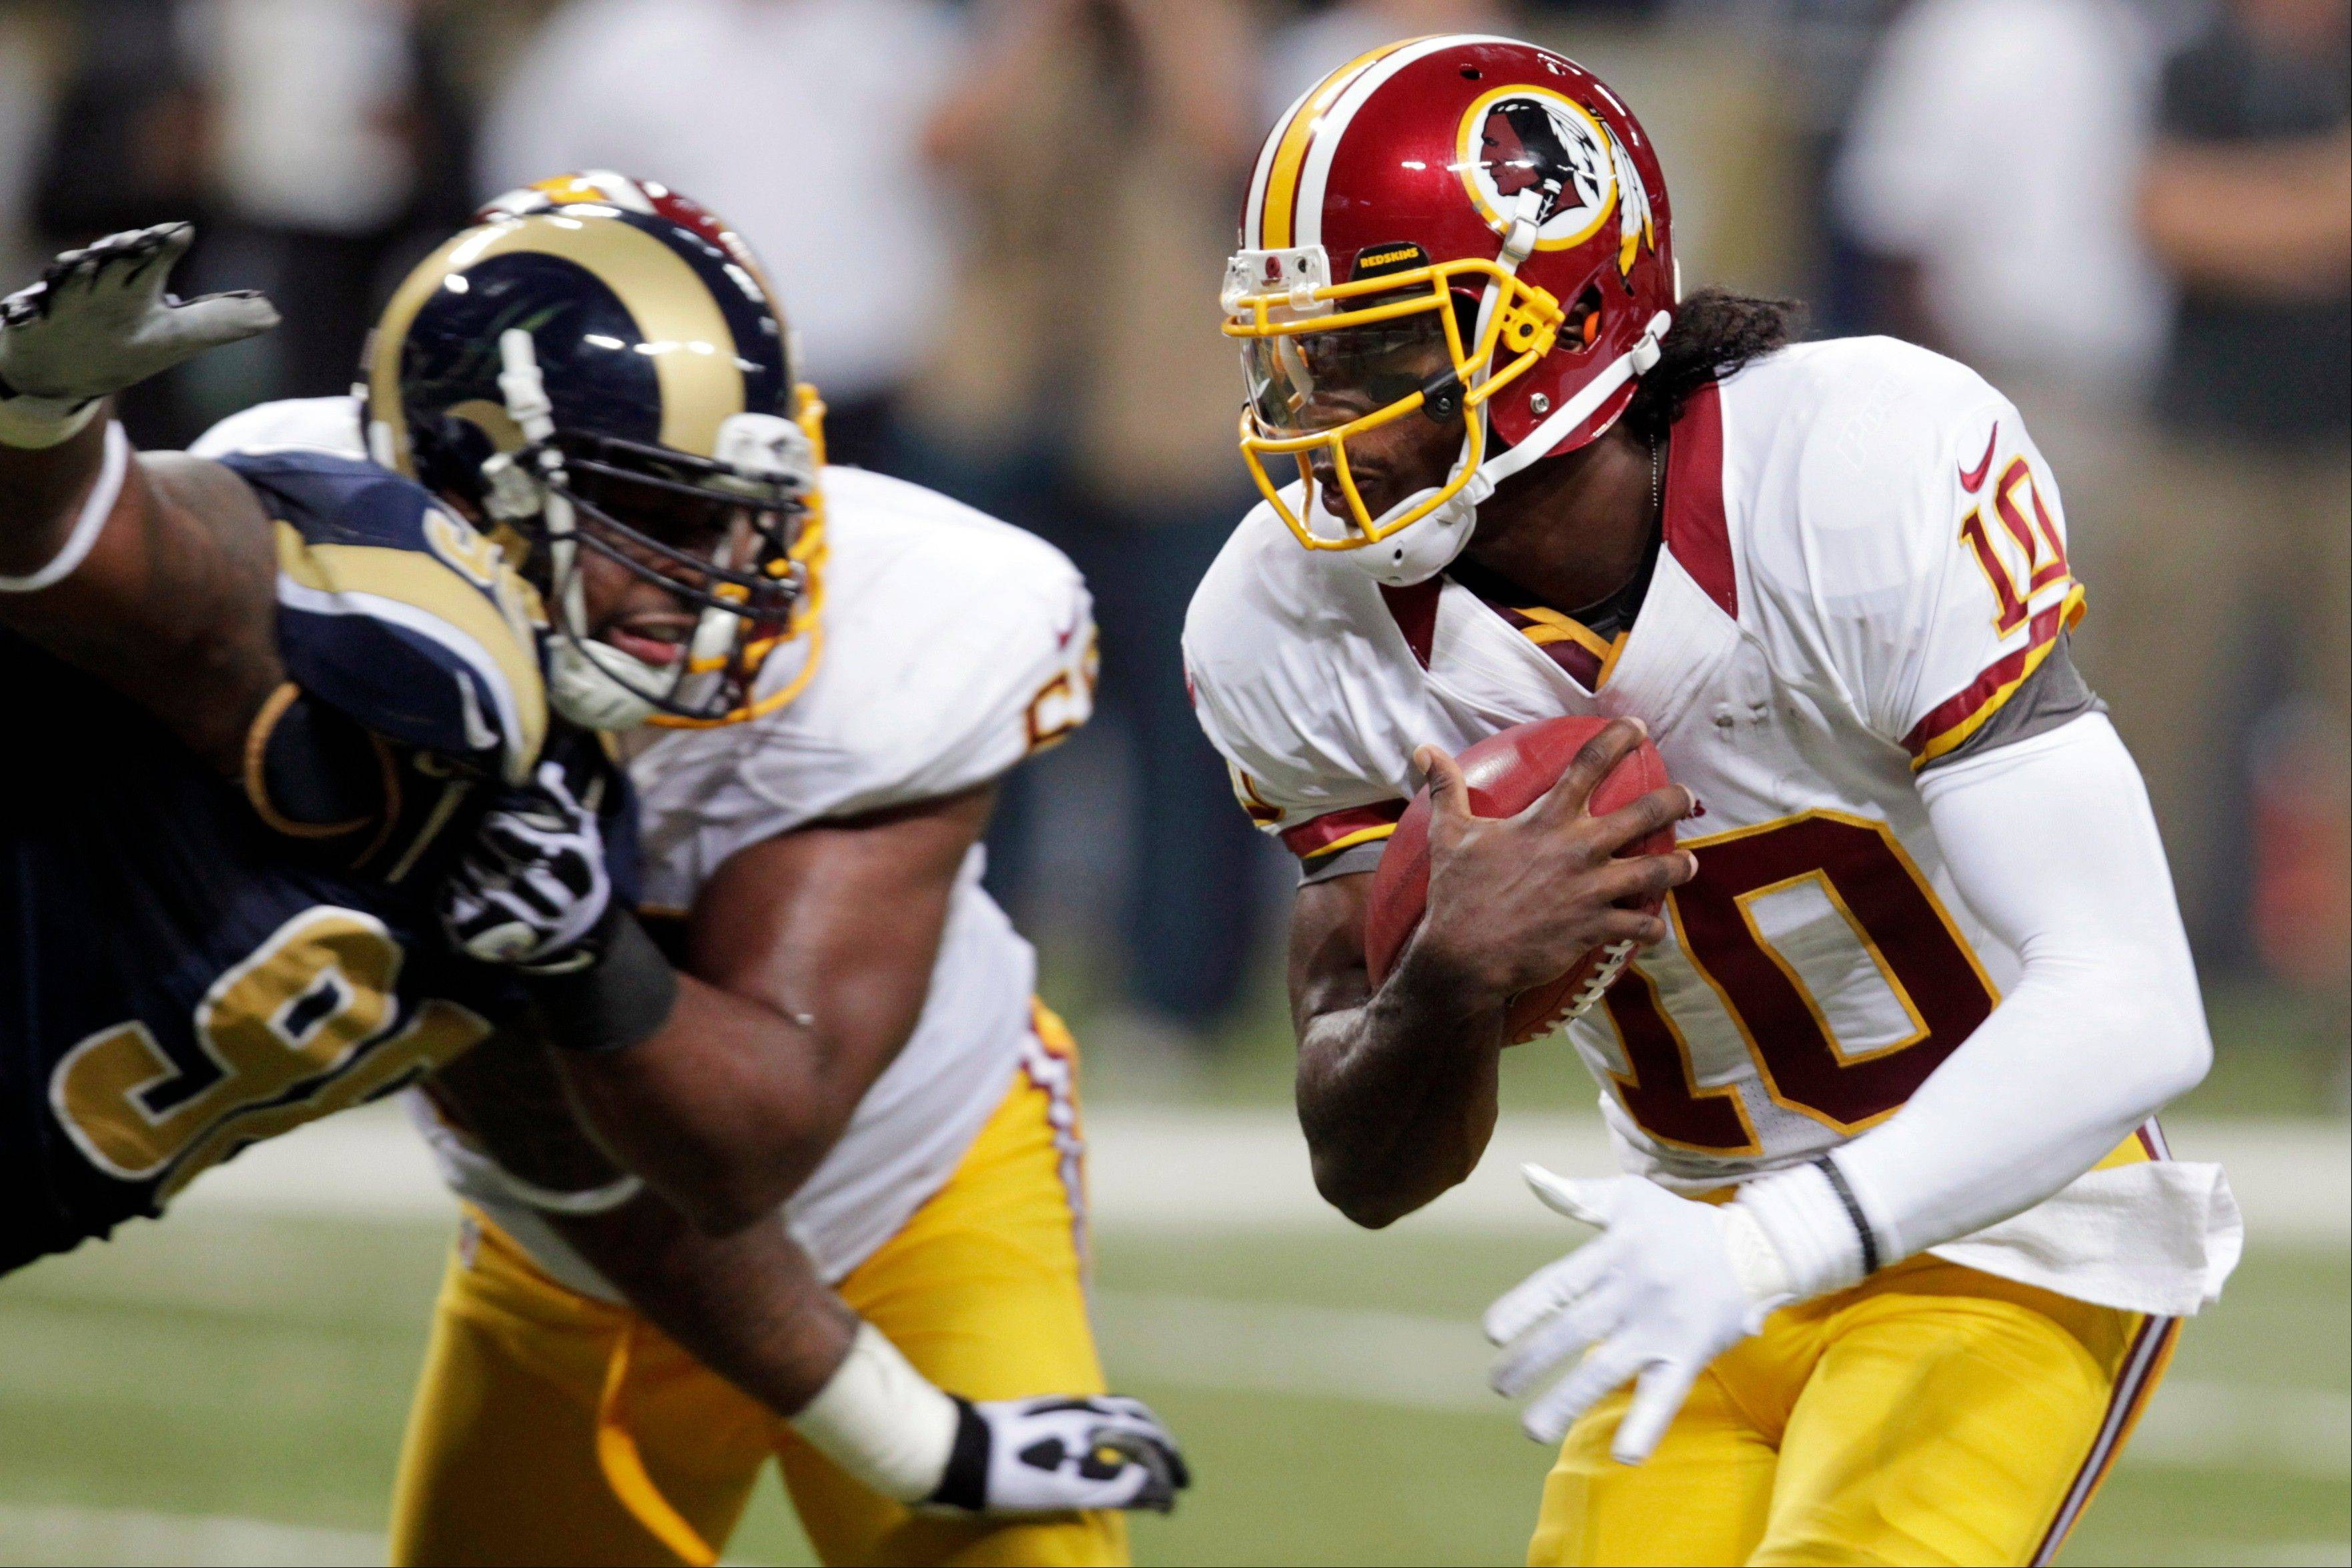 Robert Griffin III (10) runs past Rams defensive tackle Kendall Langford on his way to a touchdown Sunday. Griffin and the Redskins didn't win Sunday, but they did rack up 176 yards on the ground. Rookie running back Alfred Morris had 89 on 16 carries.